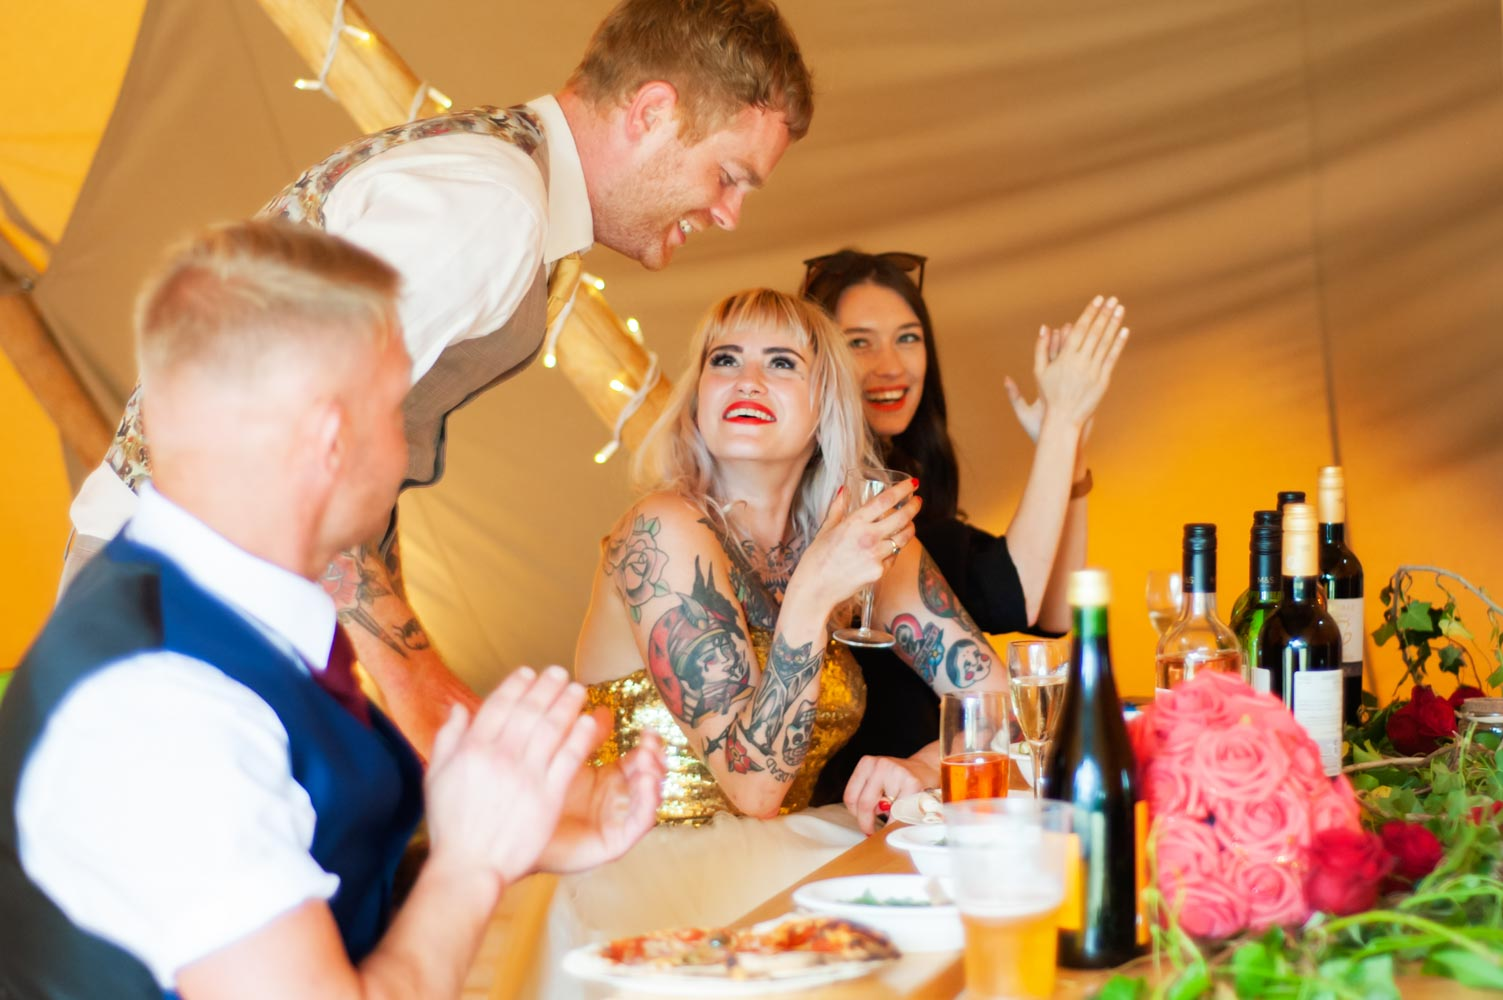 Wife looking up at groom by alternative sussex wedding photographer James Robertshaw